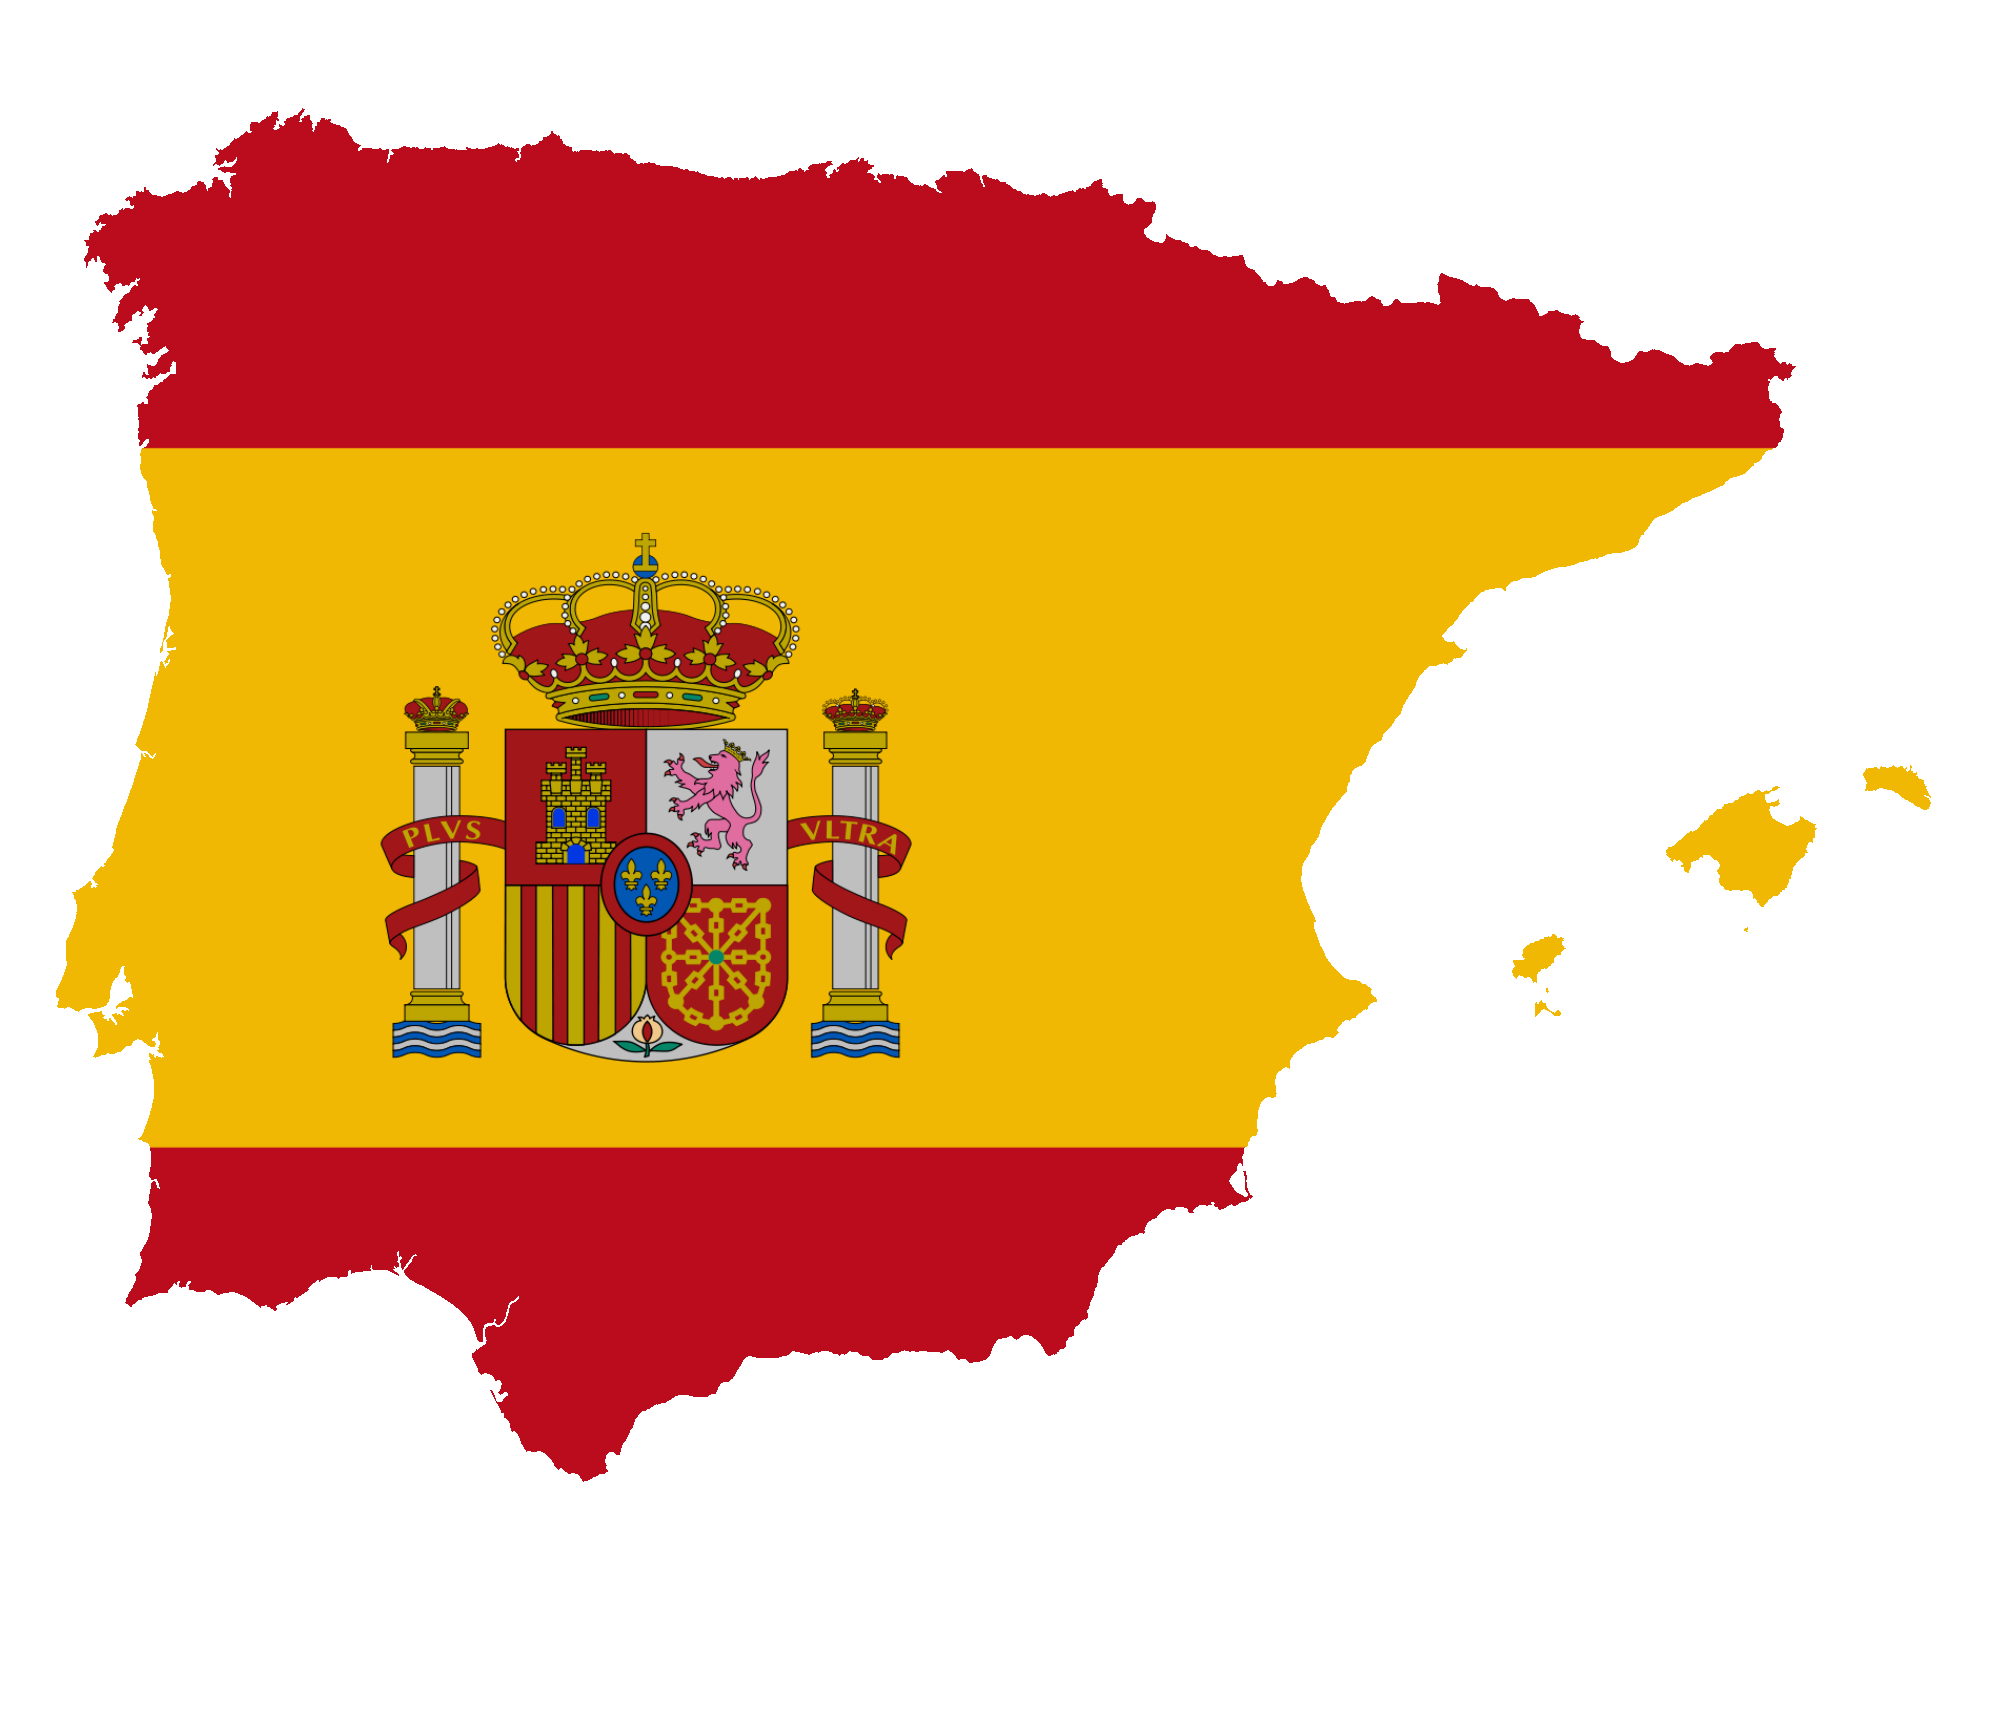 File:Flag map of Greater Spain.png.